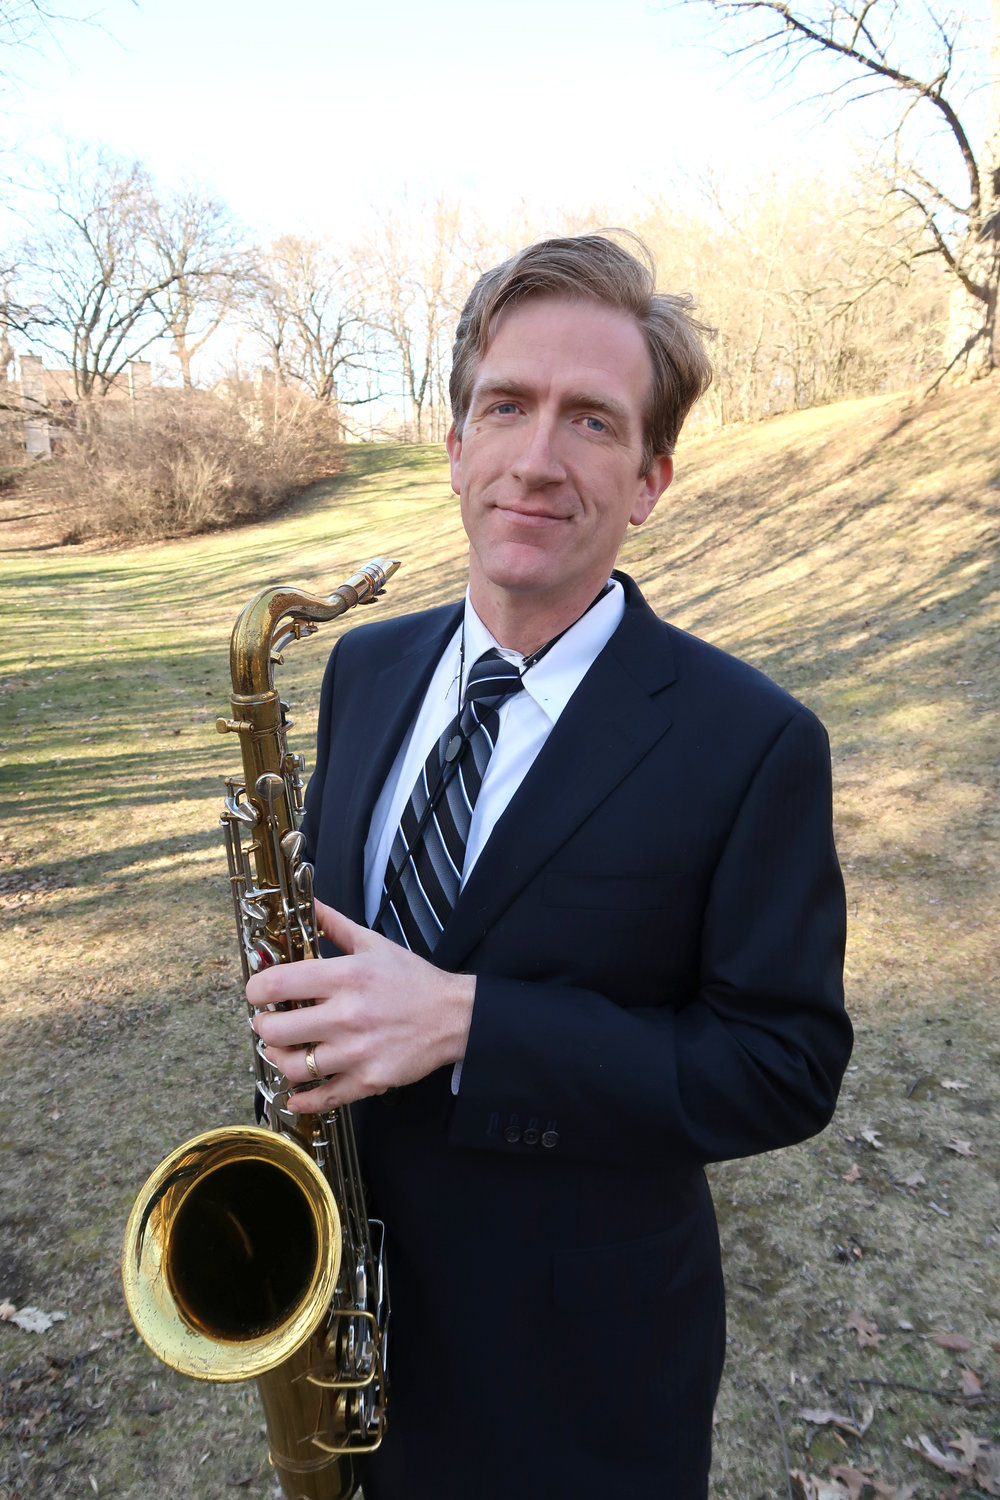 Lance Hoffman, Director - Previously based in Nashville, Tennessee, Lance has toured nationally and overseas with various groups. He has performed all over the world aboard many cruise ships, playing in and directing the on-board ensembles. Recently he has established his band in Rochester, New York, to perform the big band and dance music he loves.